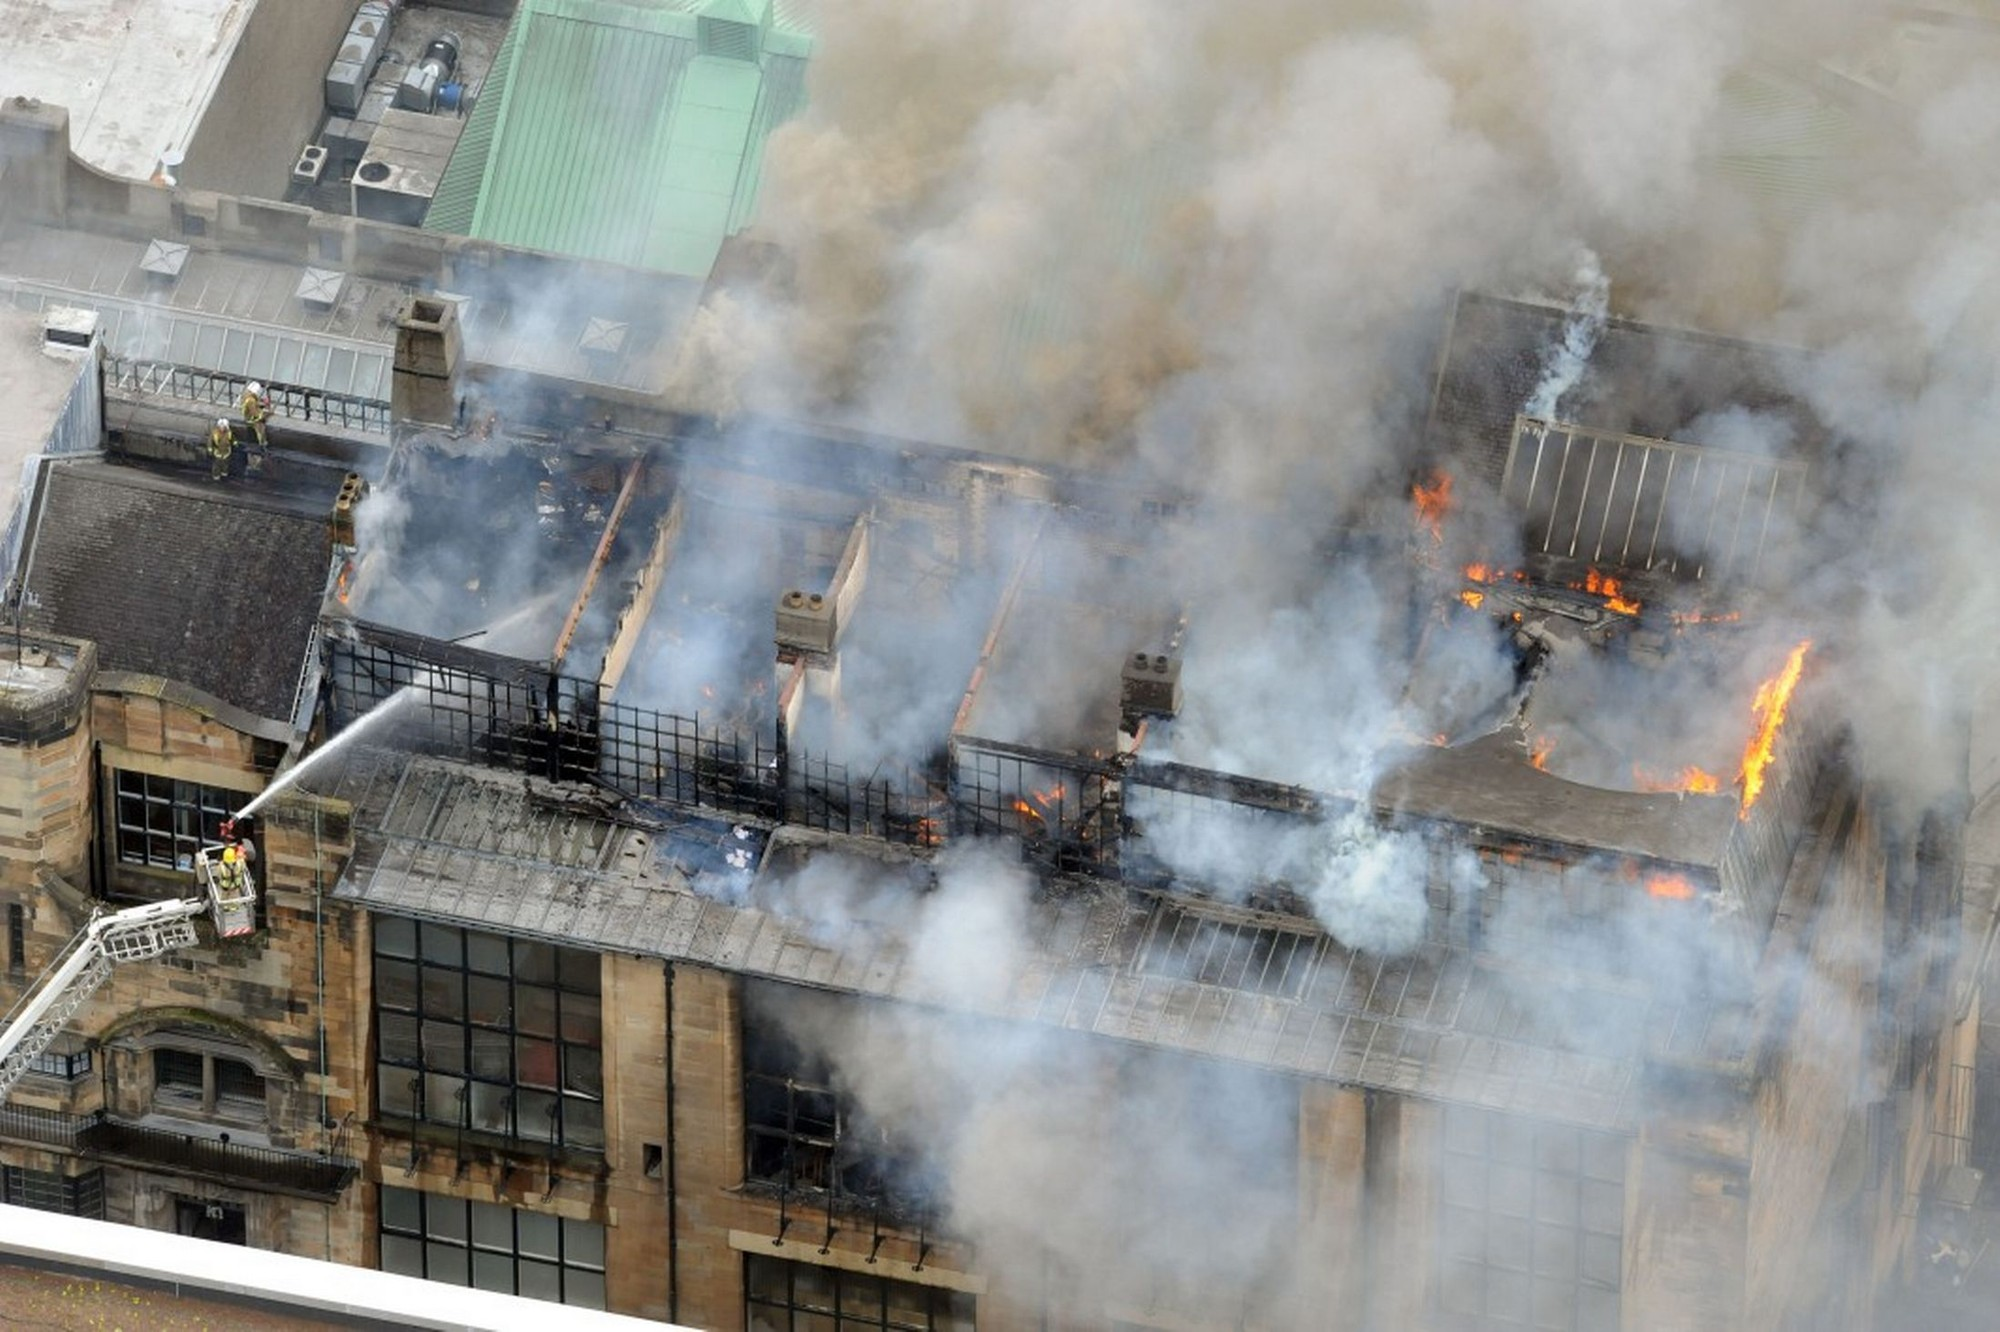 Two Symposiums Will Help Determine Glasgow School of Art's Restoration, Glasgow School of Art ablaze (unknown source)